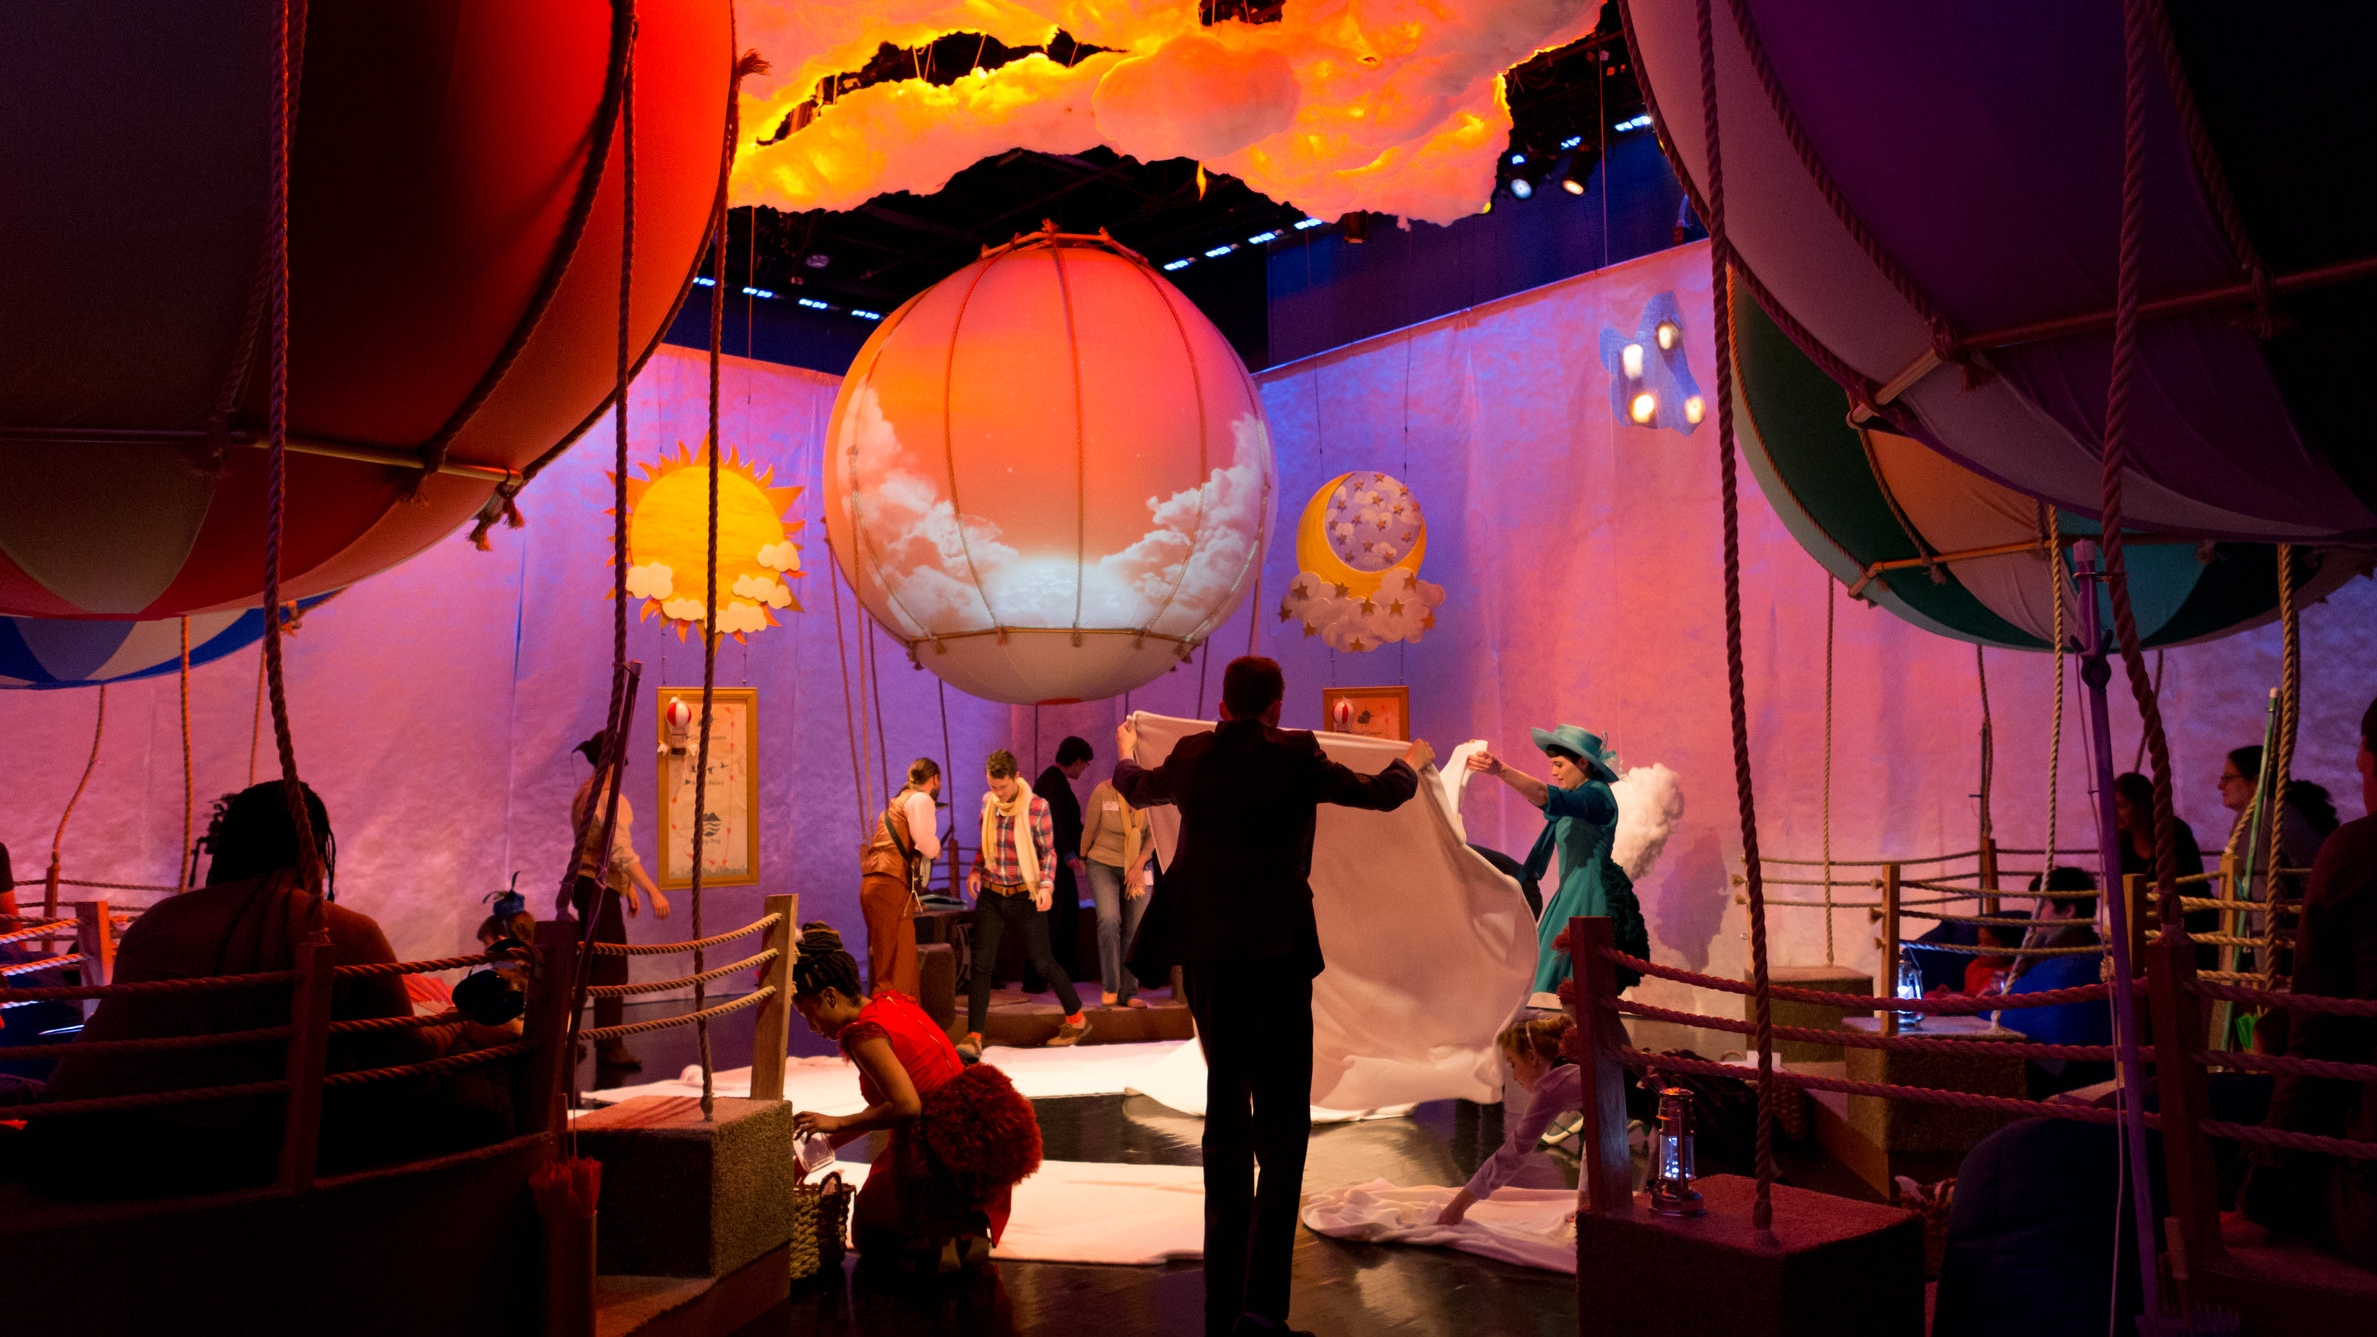 Up and Away - (Audiences on the Autism Spectrum)The Fogg Family Balloon Society is taking their 1000th balloon ride, and you are invited! Join them on an immersive multi-sensory journey through the sky in your very own hot air balloon.